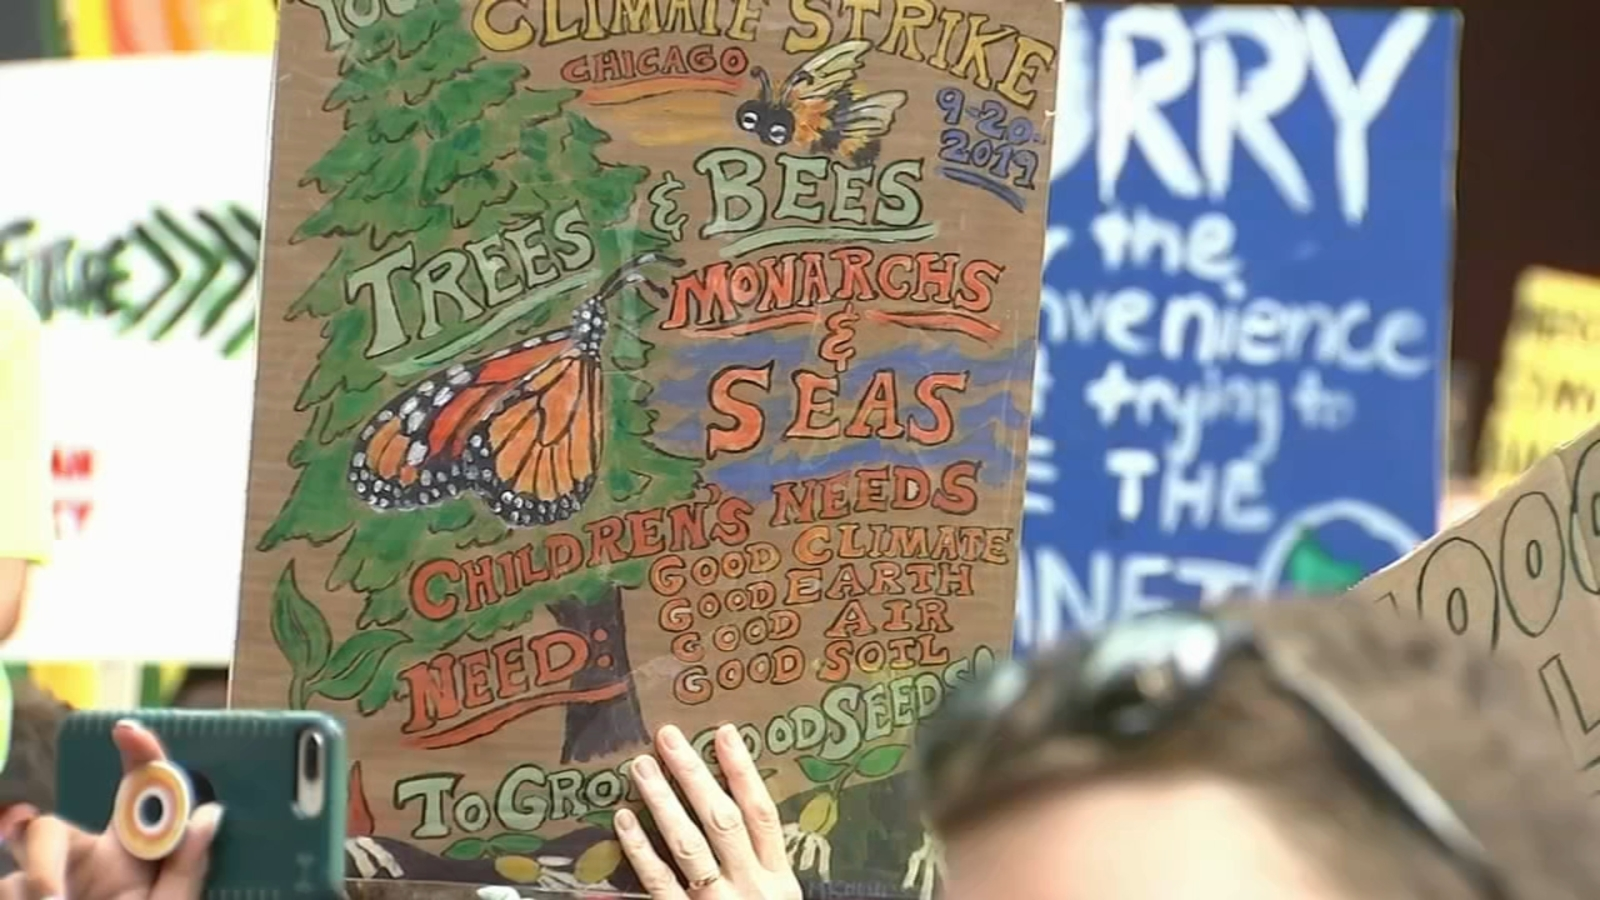 Chicago climate strike: Youth join global climate change call for action